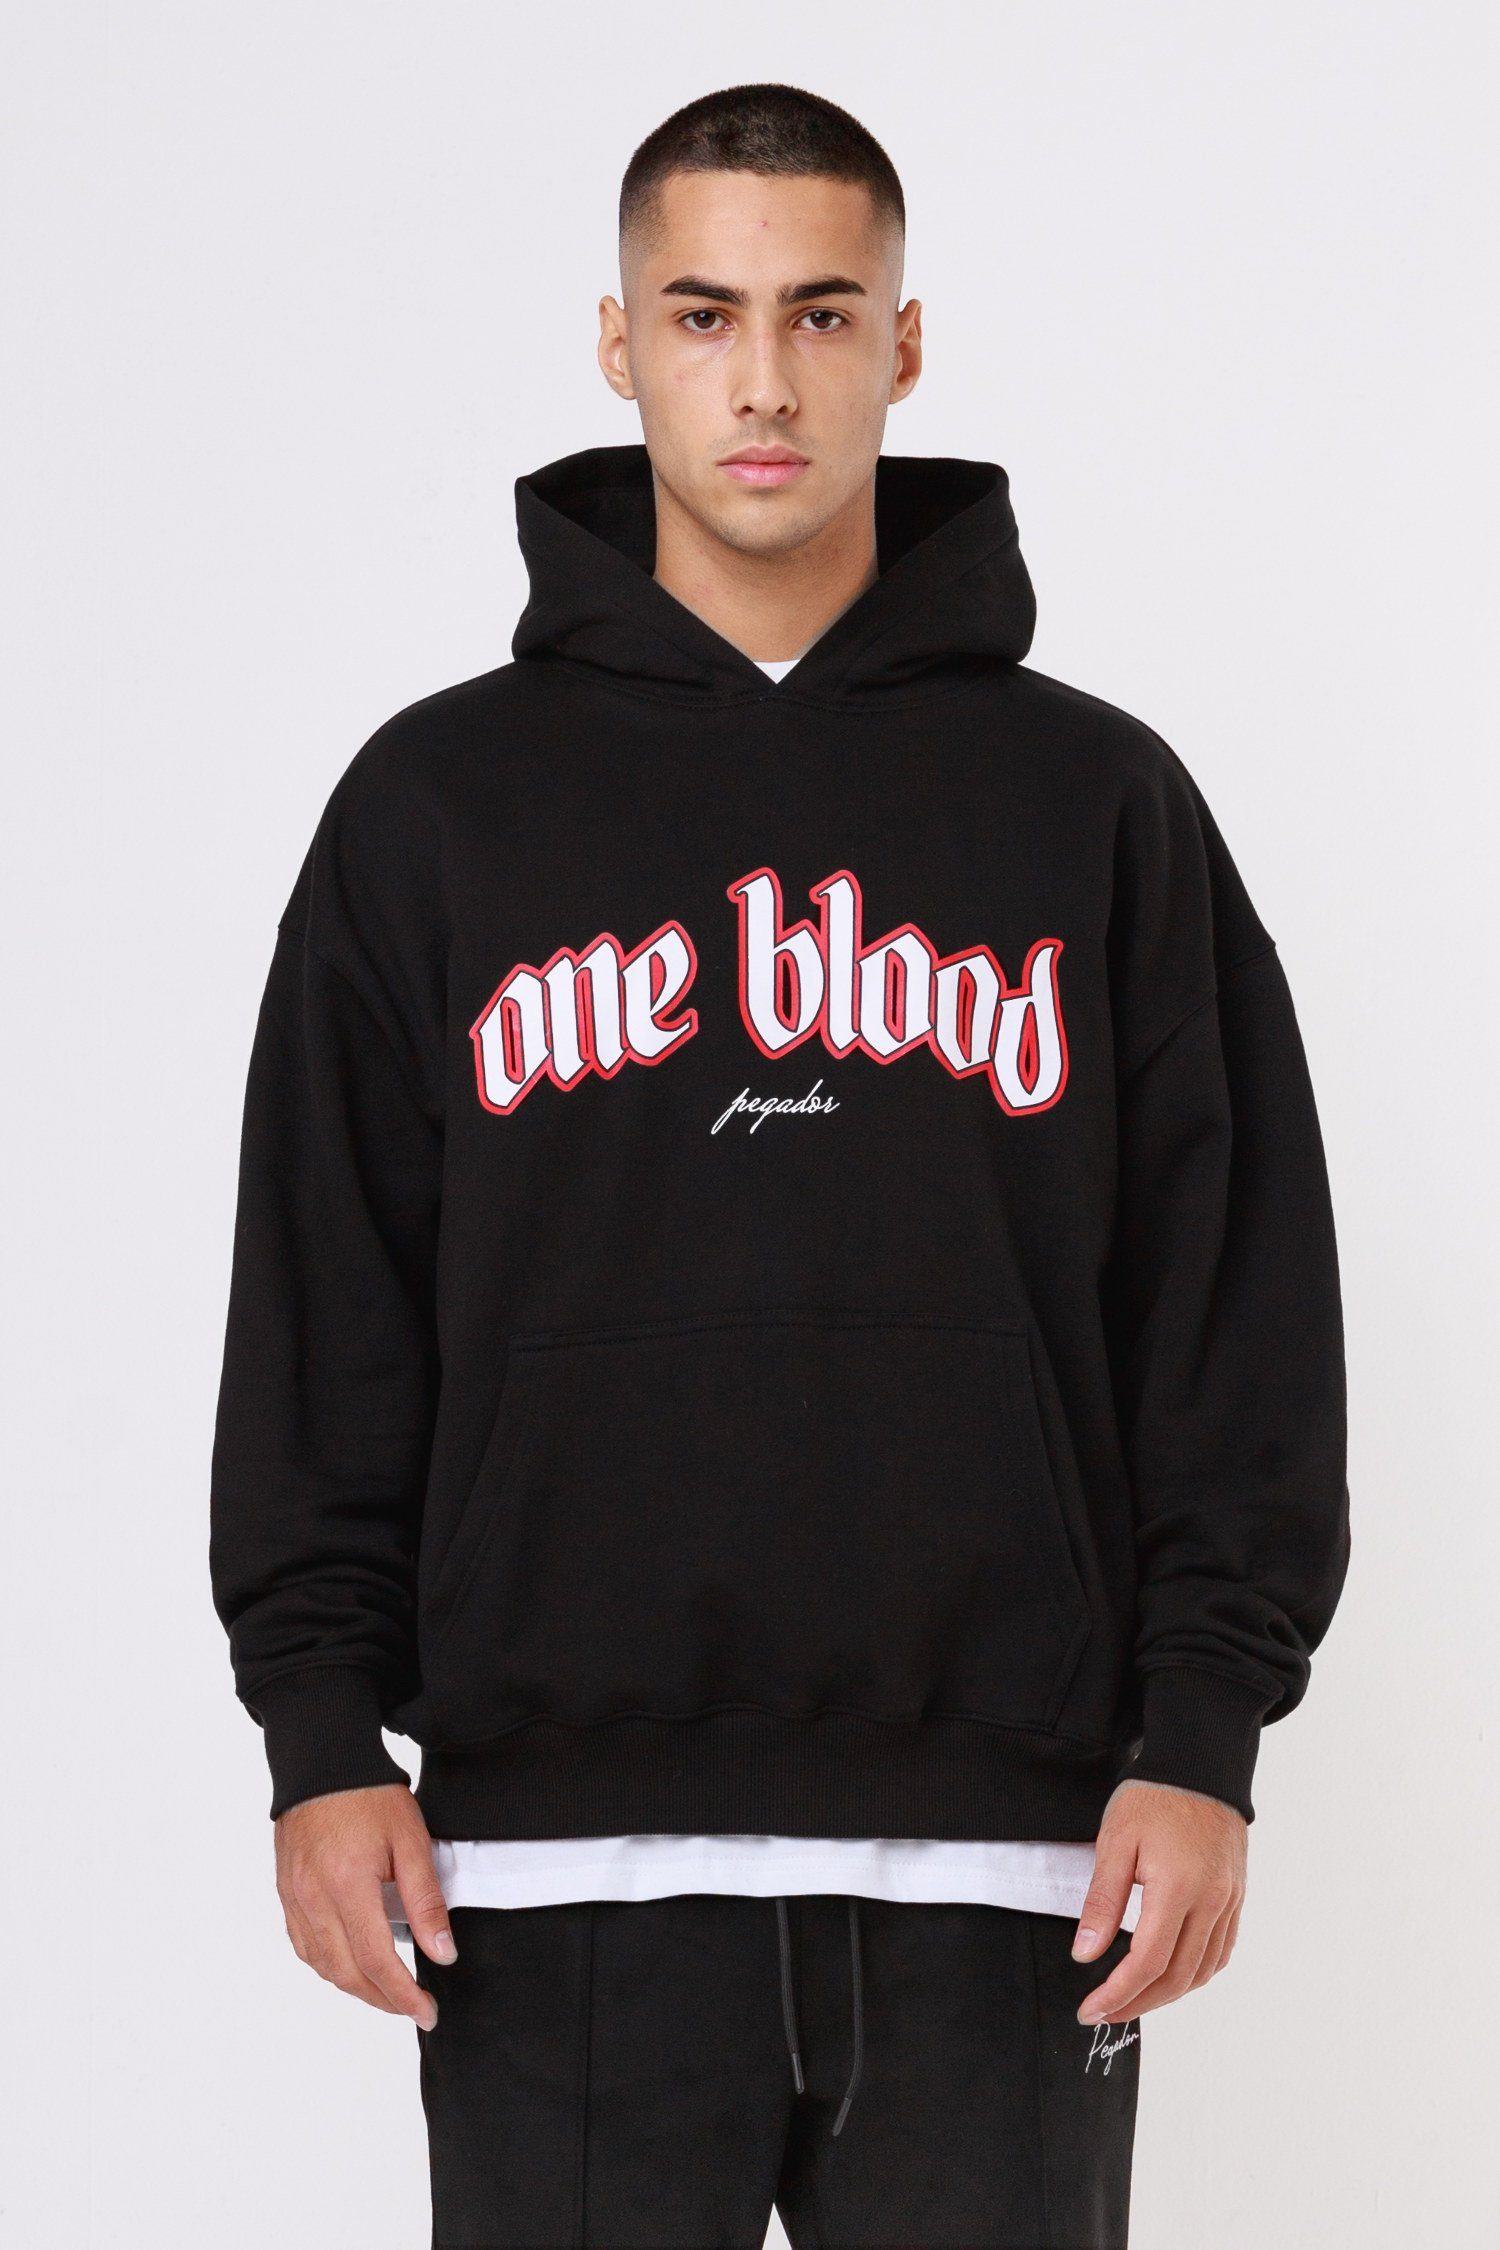 Oneblood Oversized Hoodie Black Hoodies One blood